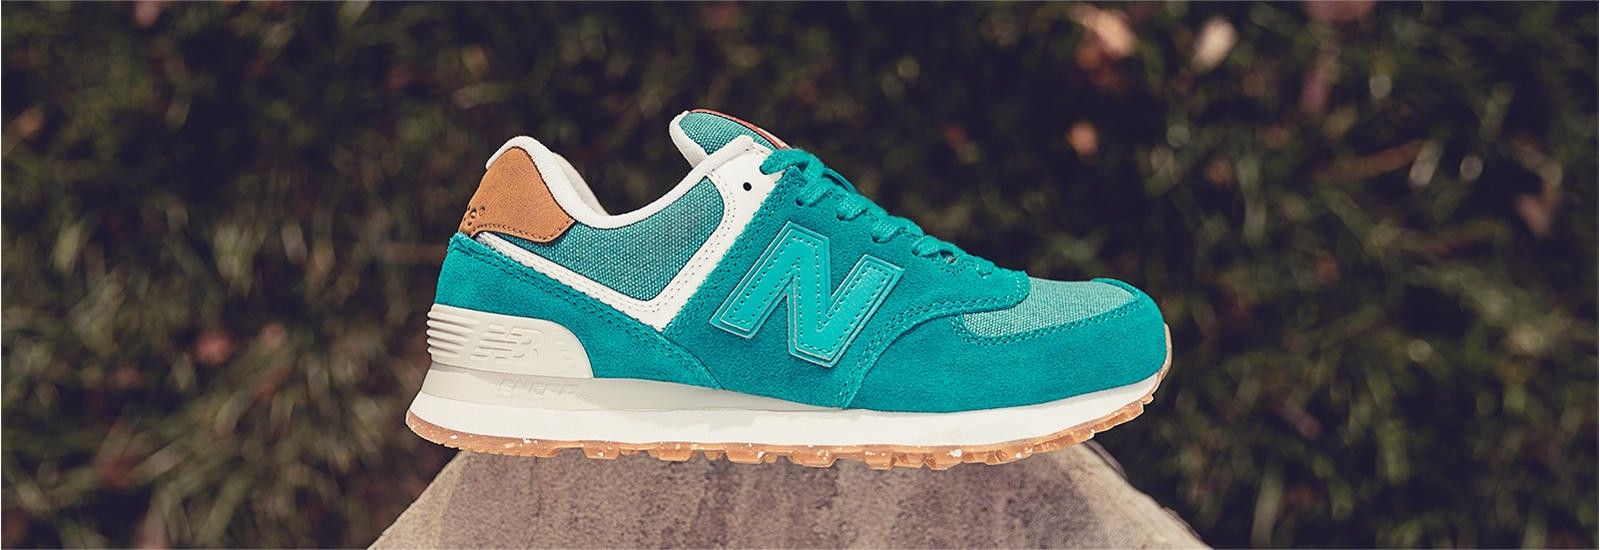 finest selection 7ac06 82063 Chaussures De Sport New Balance 574 Global Surf Femme Galapagos   Poudre  Nouvelle Collection